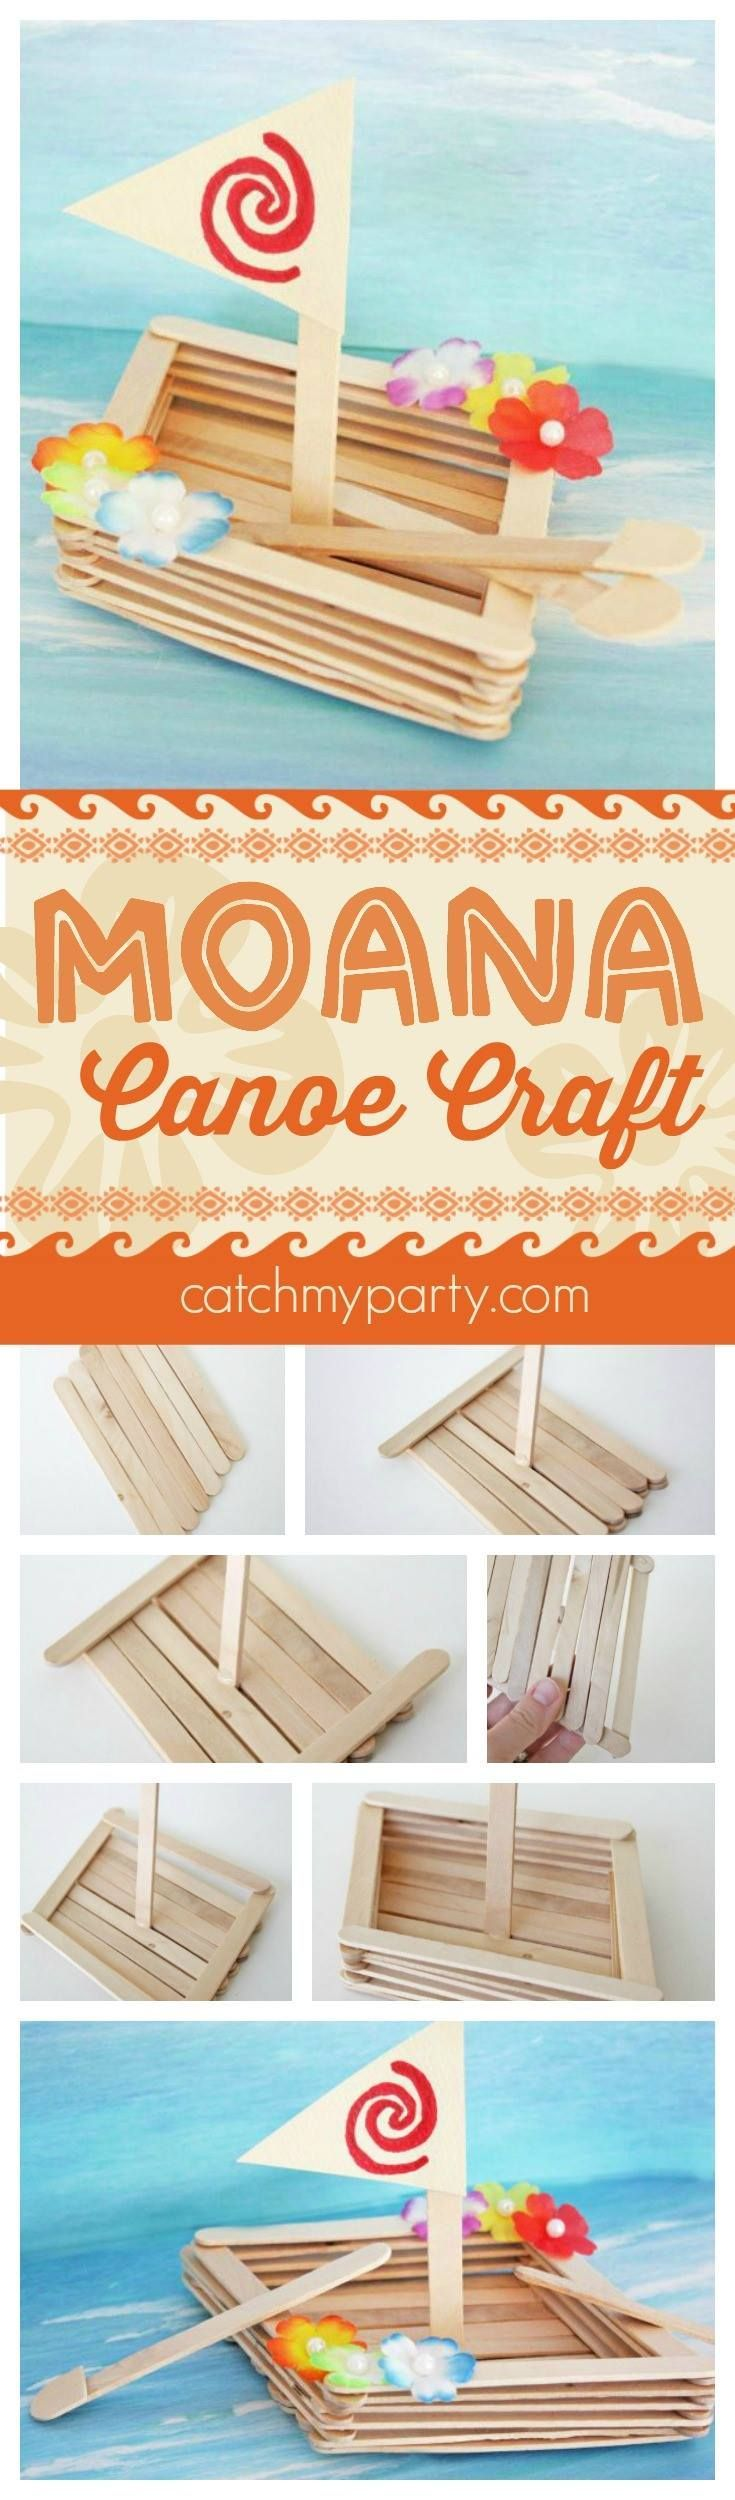 Fun Moana canoe craft perfect for a Moana birthday party activity, party favor, or rainy day craft with your kids. See more Moana party ideas at http://CatchMyParty.com.